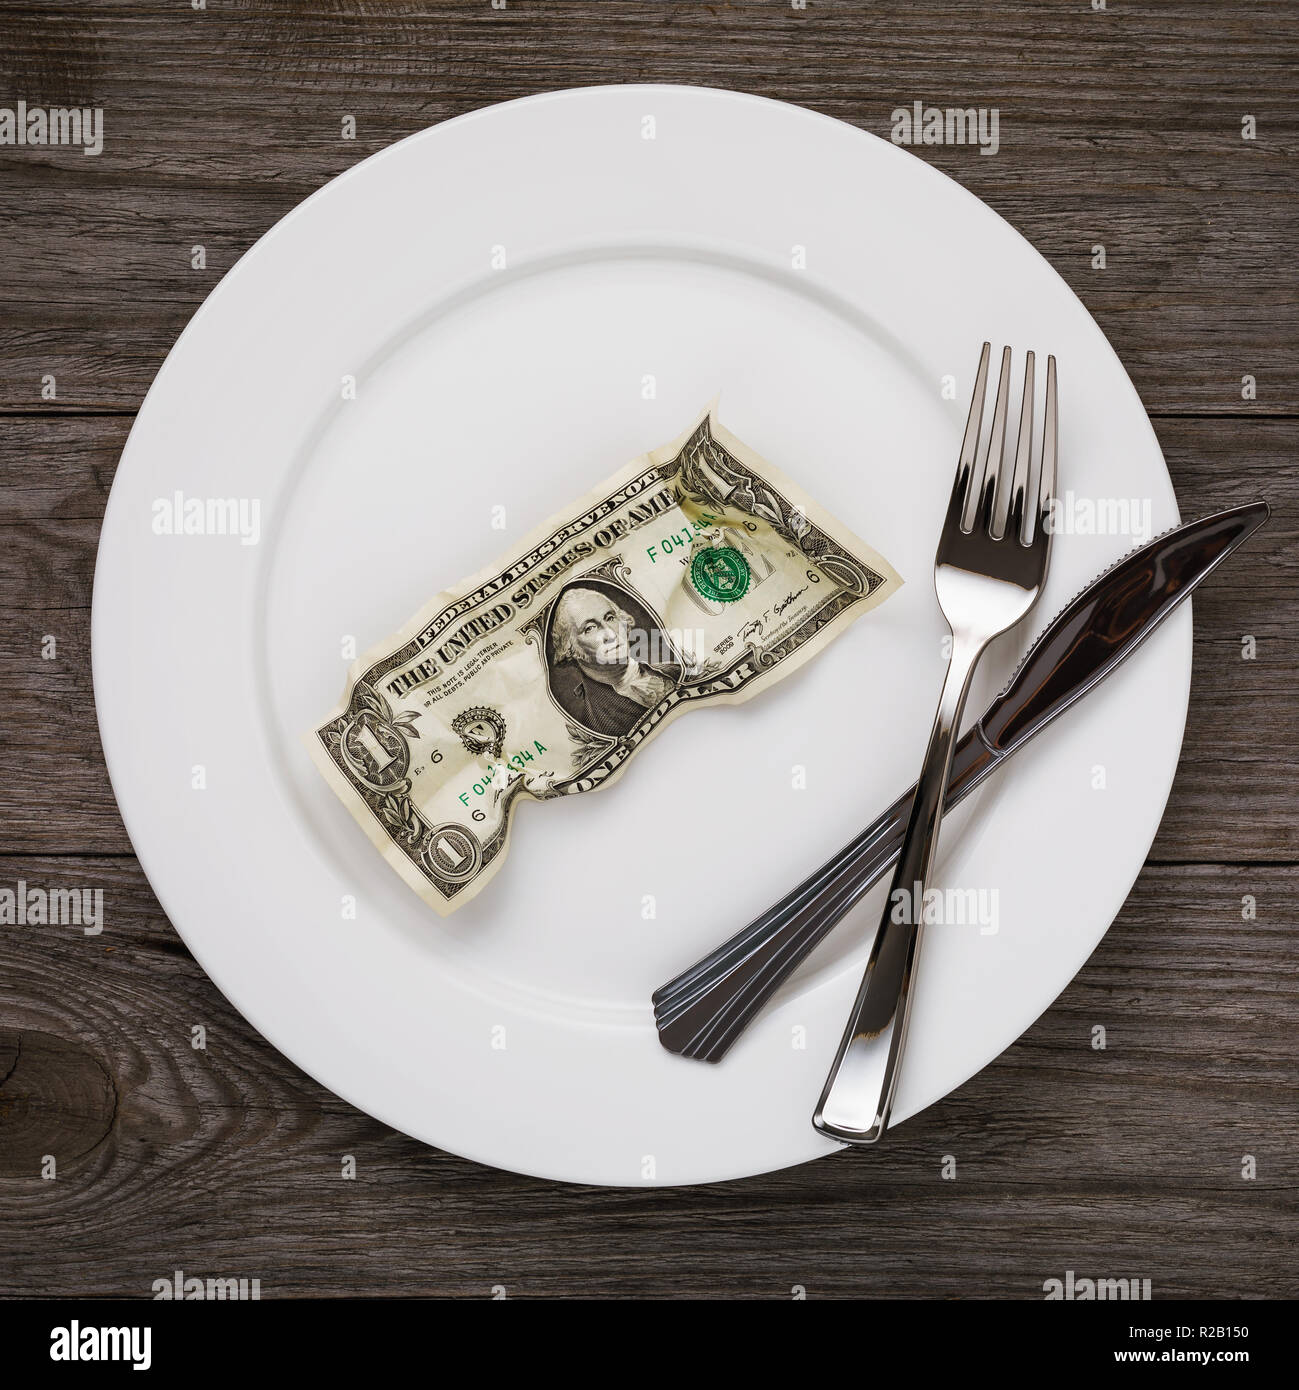 Crumpled dollar in the plate with fork and knife on the wooden table. Concept on the subject of human needs - Stock Image